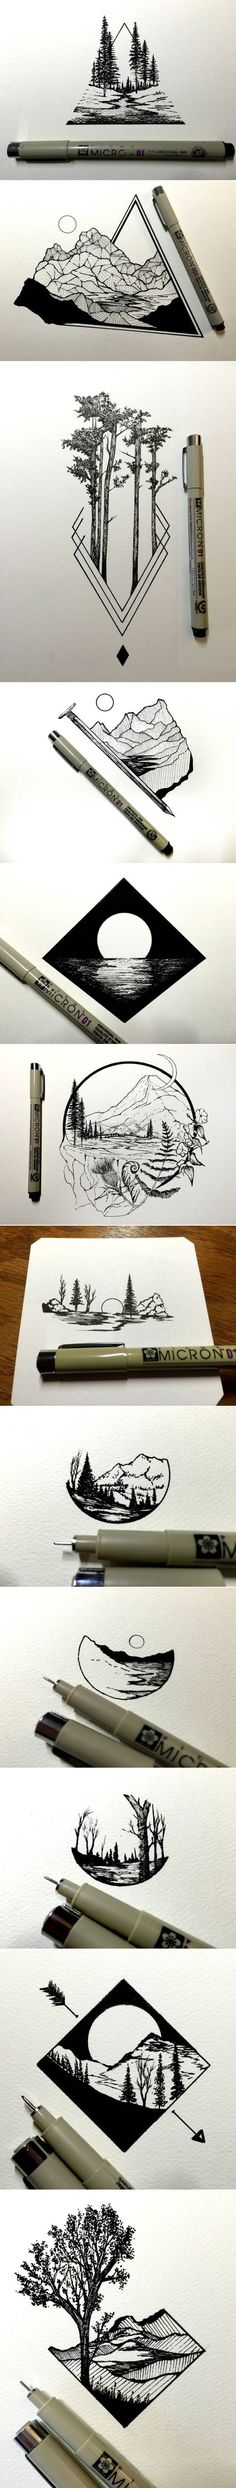 111 Insanely Creative Cool Things to Draw Today #Taide